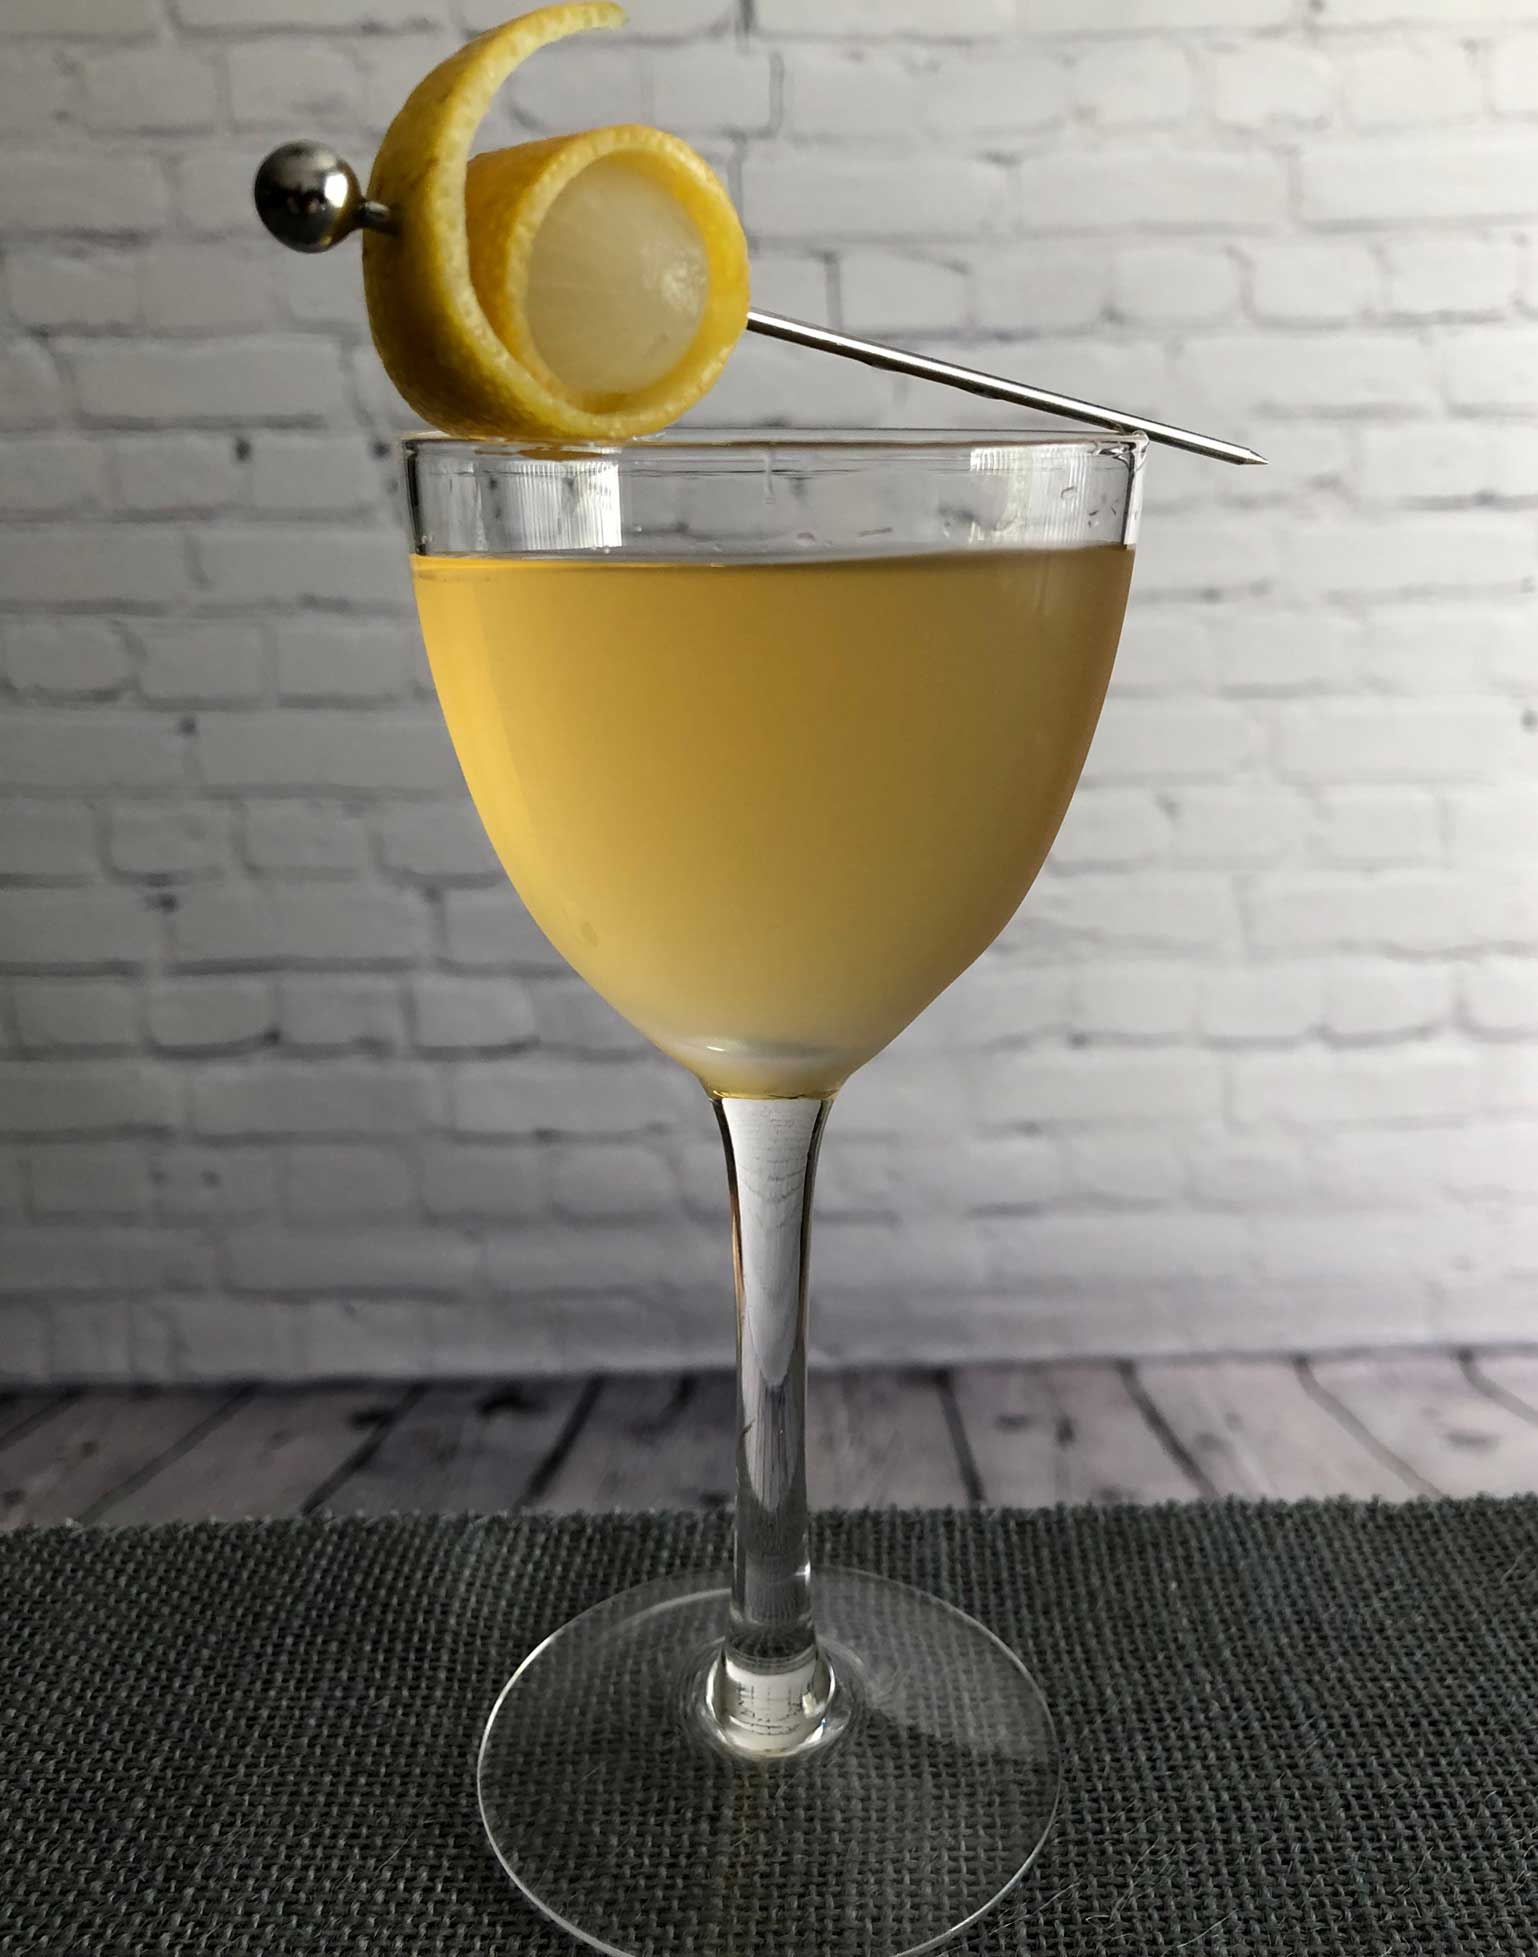 An example of the Sisters and Brothers, the mixed drink (cocktail), by Kate Perry, Seattle, featuring clairin or rhum agricole blanc, Mattei Cap Corse Blanc Quinquina, and orange bitters; photo by Lee Edwards